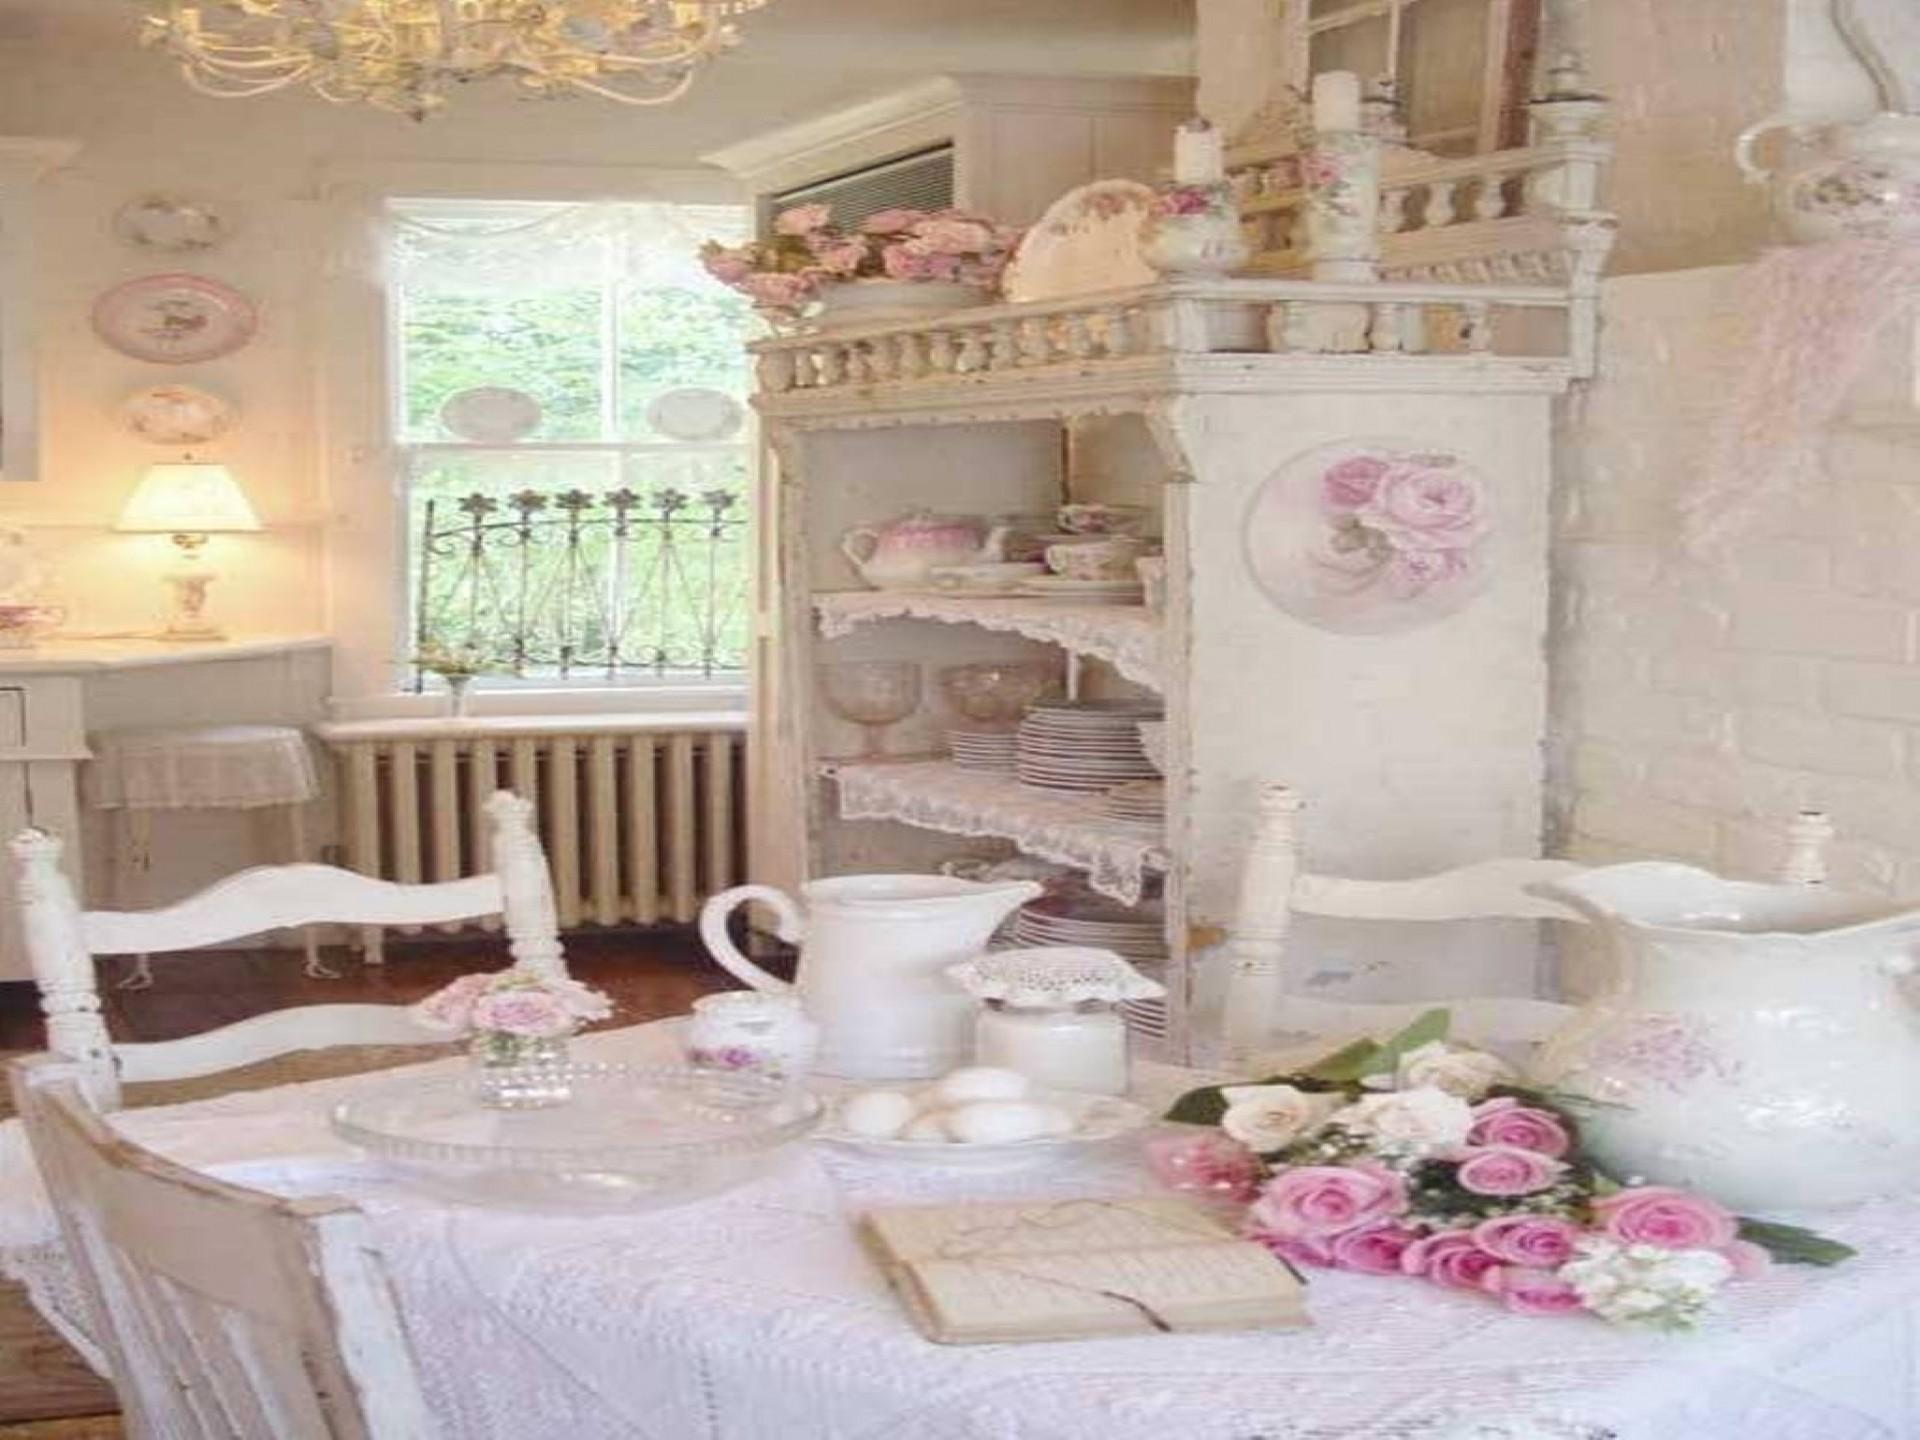 Modern Kitchen Pink White Colour Scheme Shabby Chic